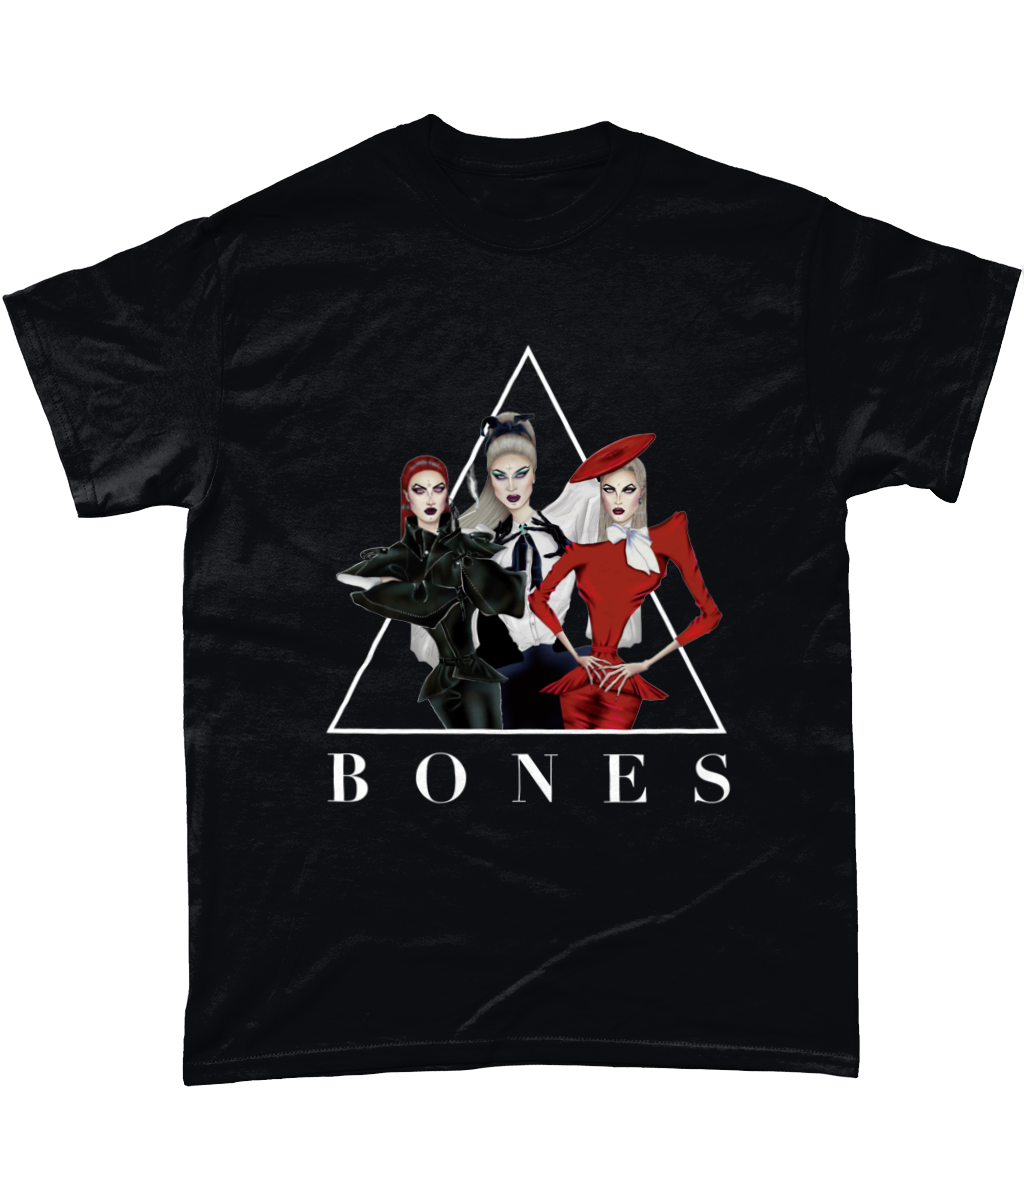 BONES - Official Merch - Black Tee